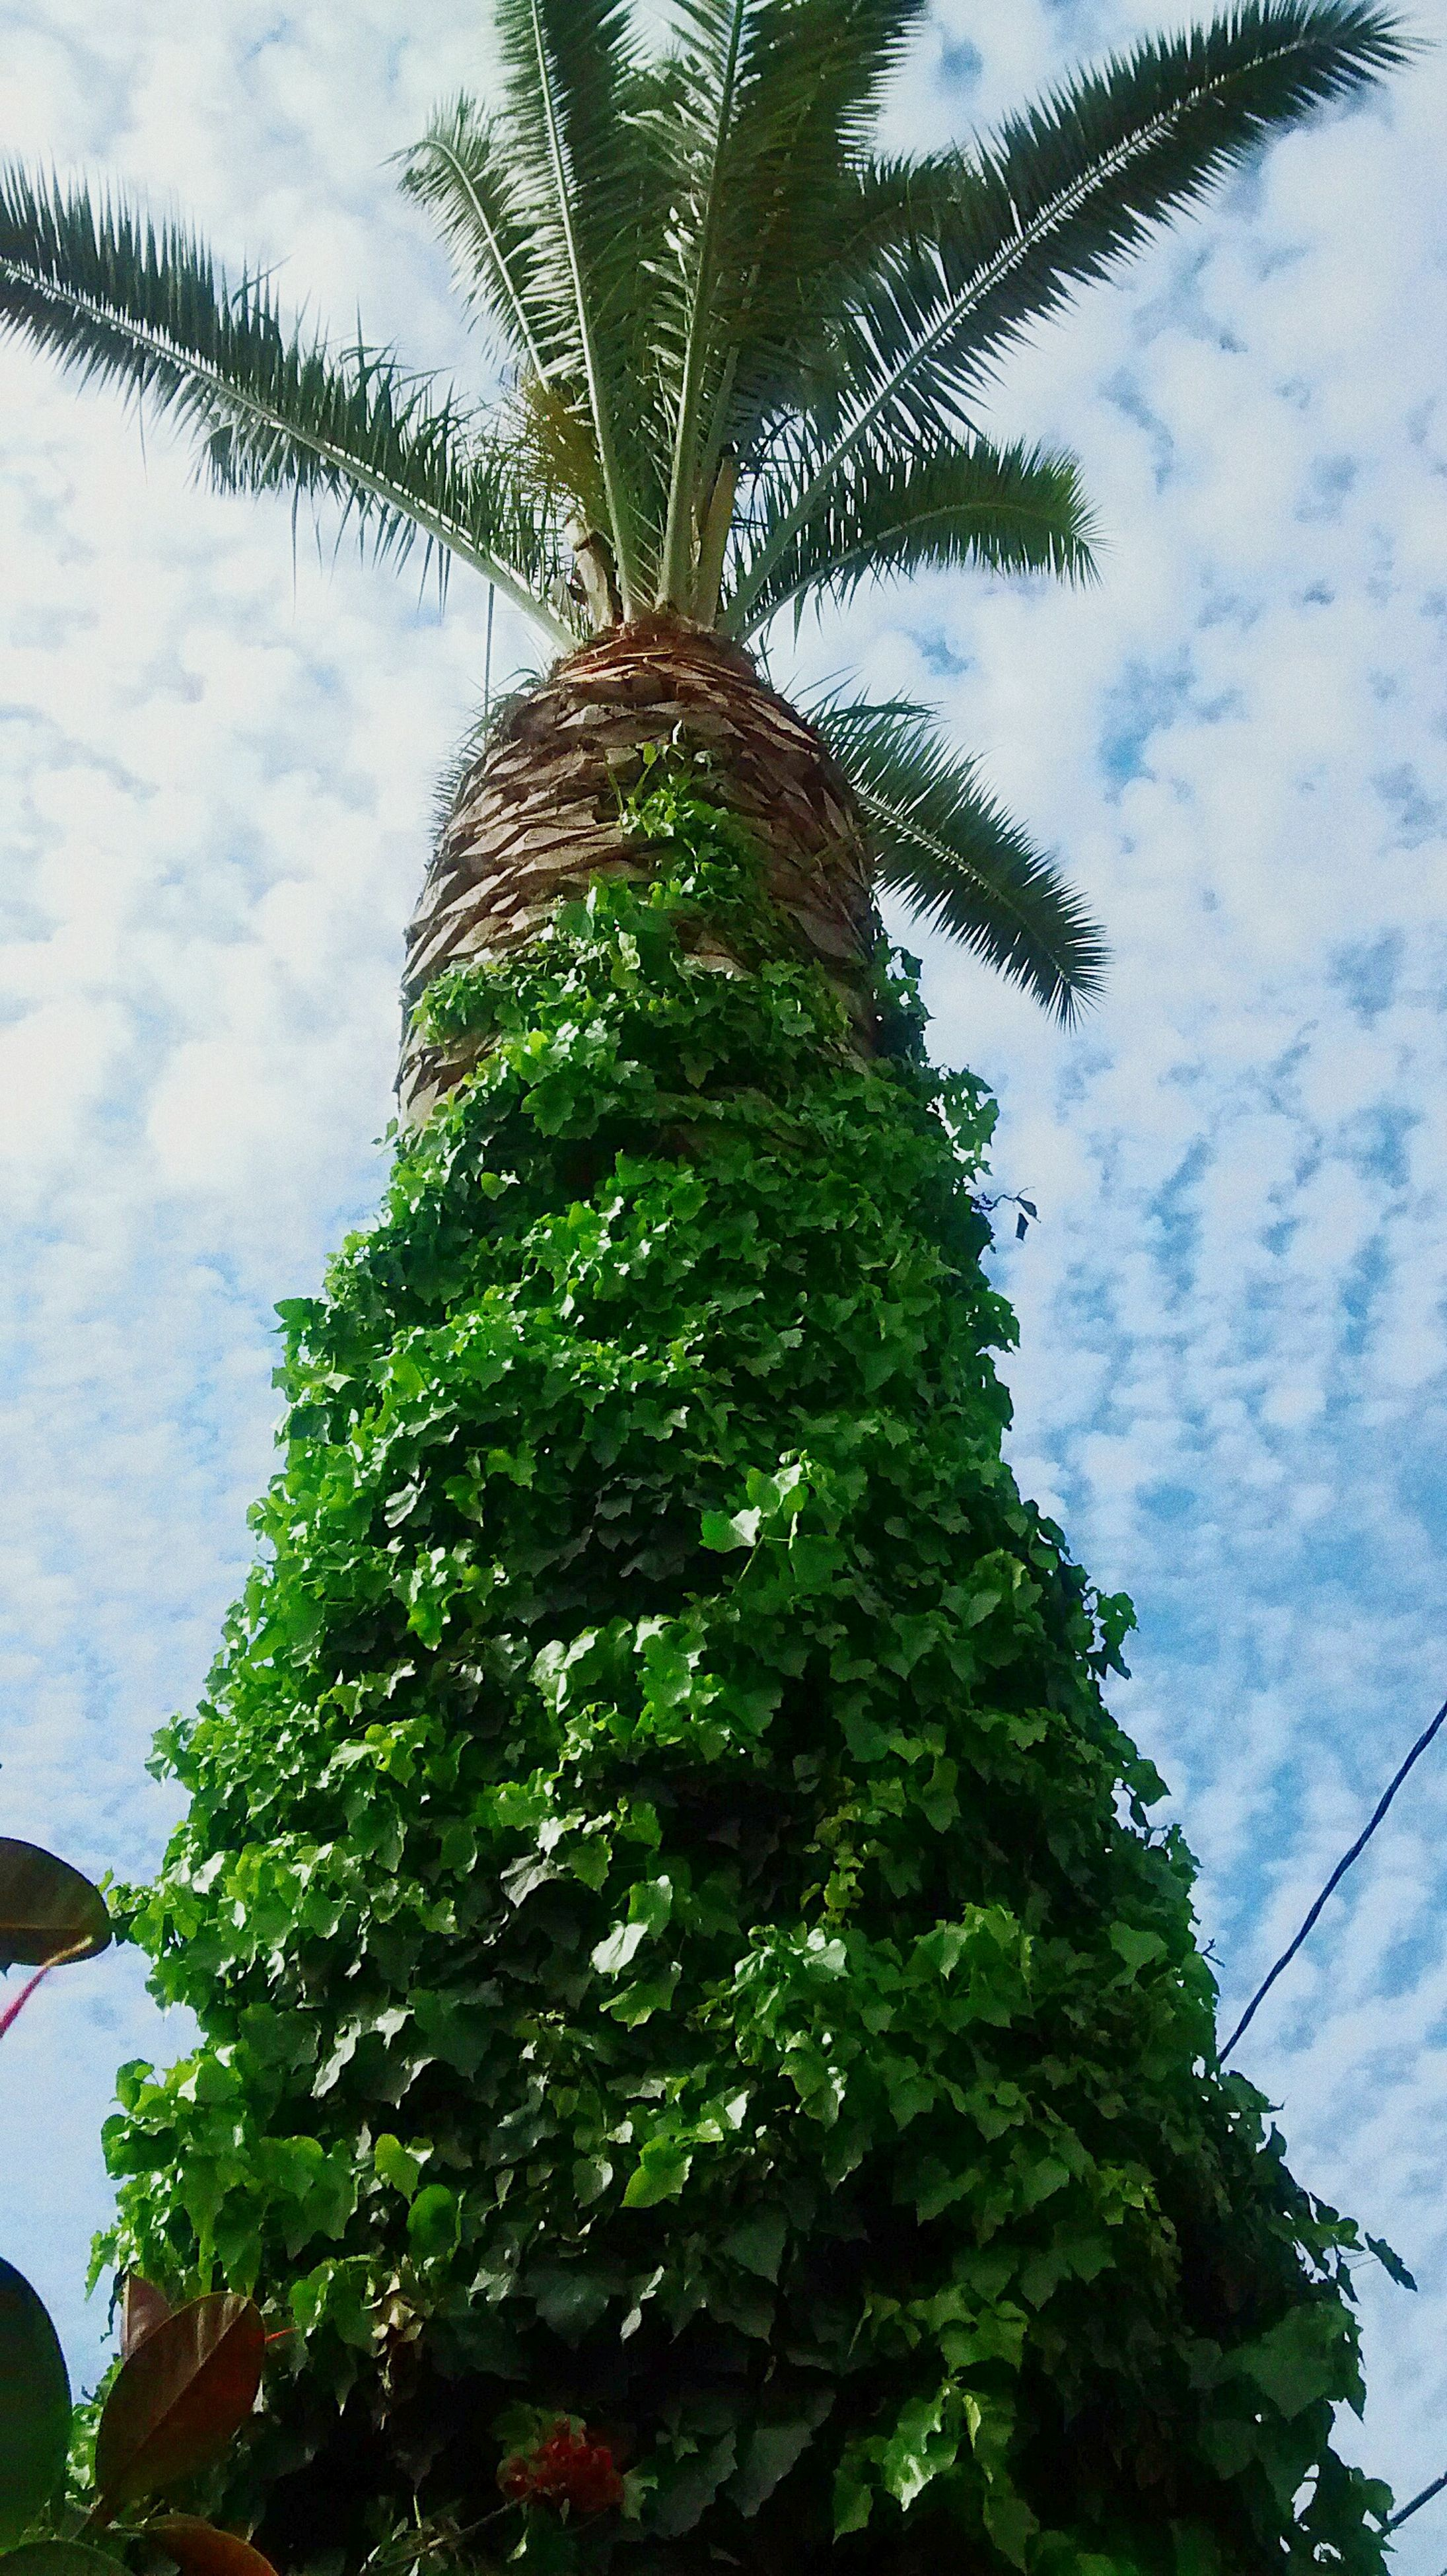 low angle view, tree, growth, sky, green color, branch, leaf, nature, cloud - sky, tree trunk, plant, growing, day, tranquility, beauty in nature, outdoors, no people, cloud, green, ivy